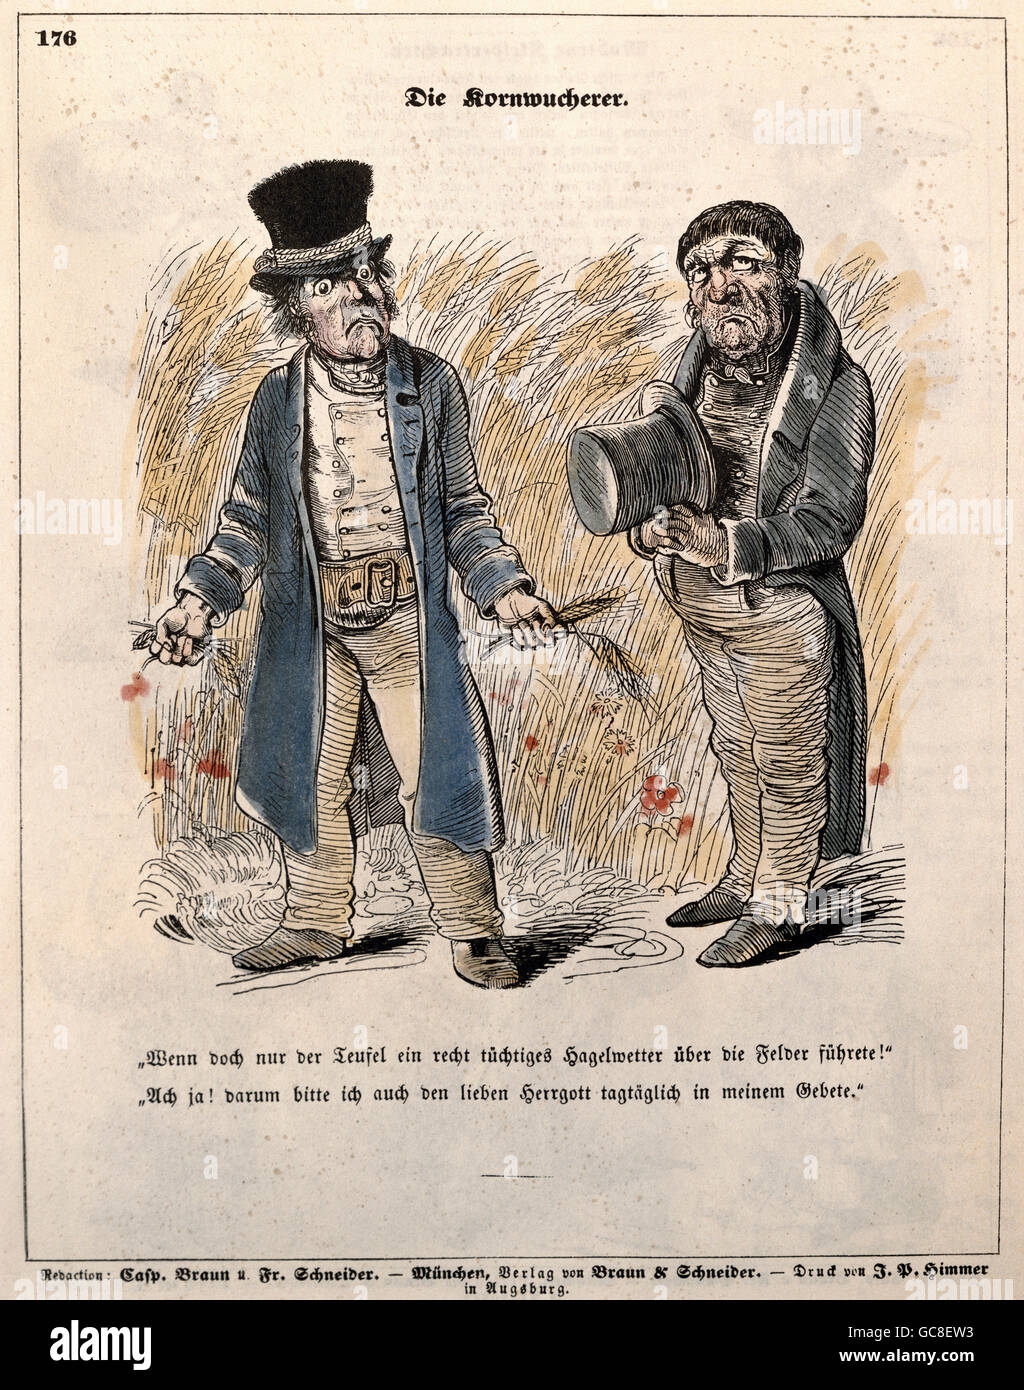 people, society, political caricature, 'grain usurers', Fliegende Blätter, Germany, 1845, Additional - Stock Image